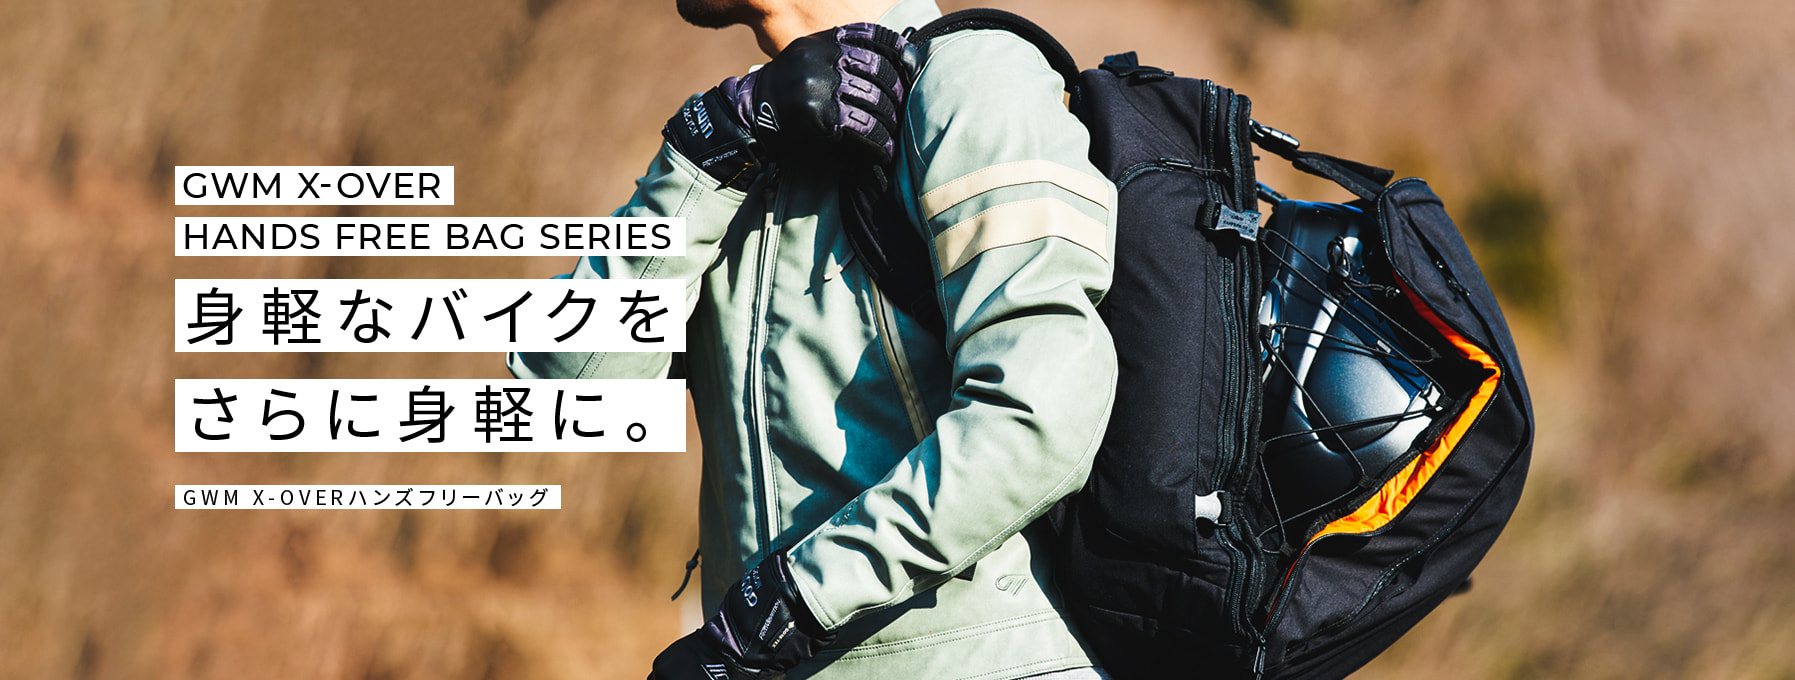 GWM x-overhands free bag series身軽なバイクをさらに身軽に。GWM X-OVERハンズフリーバッグ